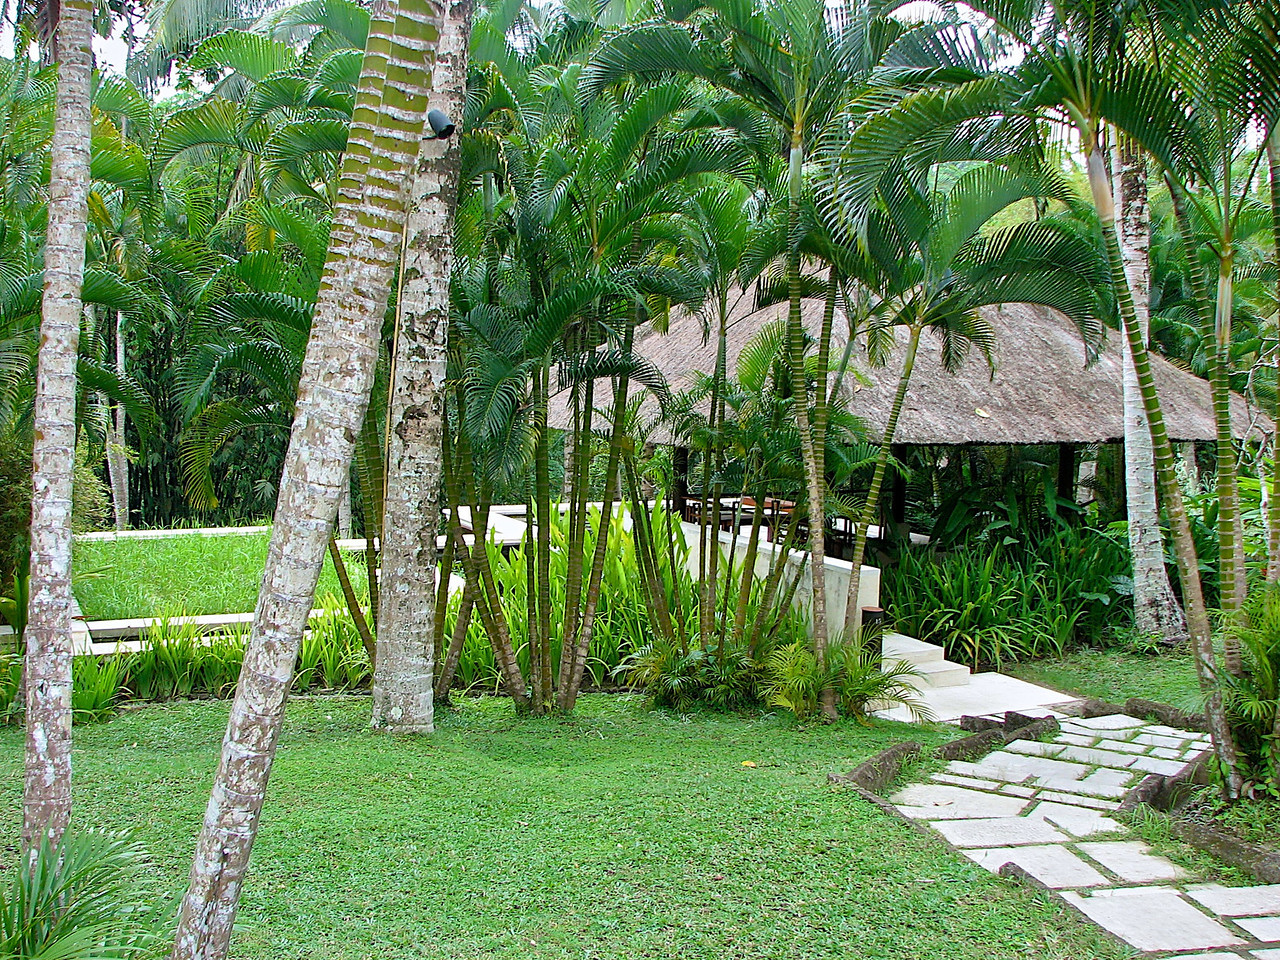 In addition to rooms in the main building, there are also villas throughout the property.